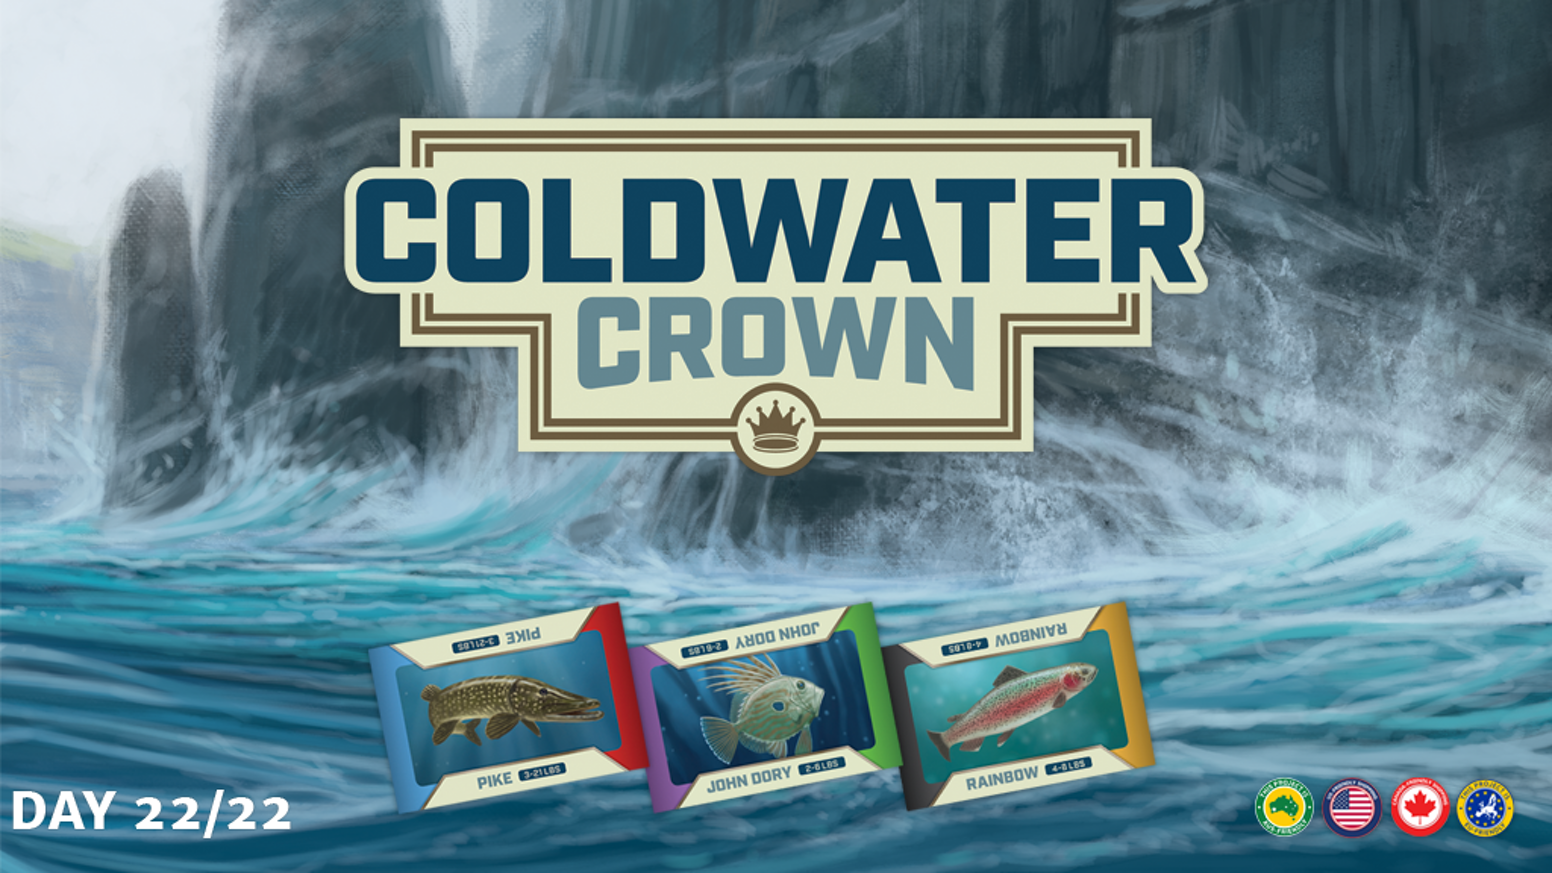 Coldwater crown a strategic fishing game by dennis hoyle for Wmat game and fish